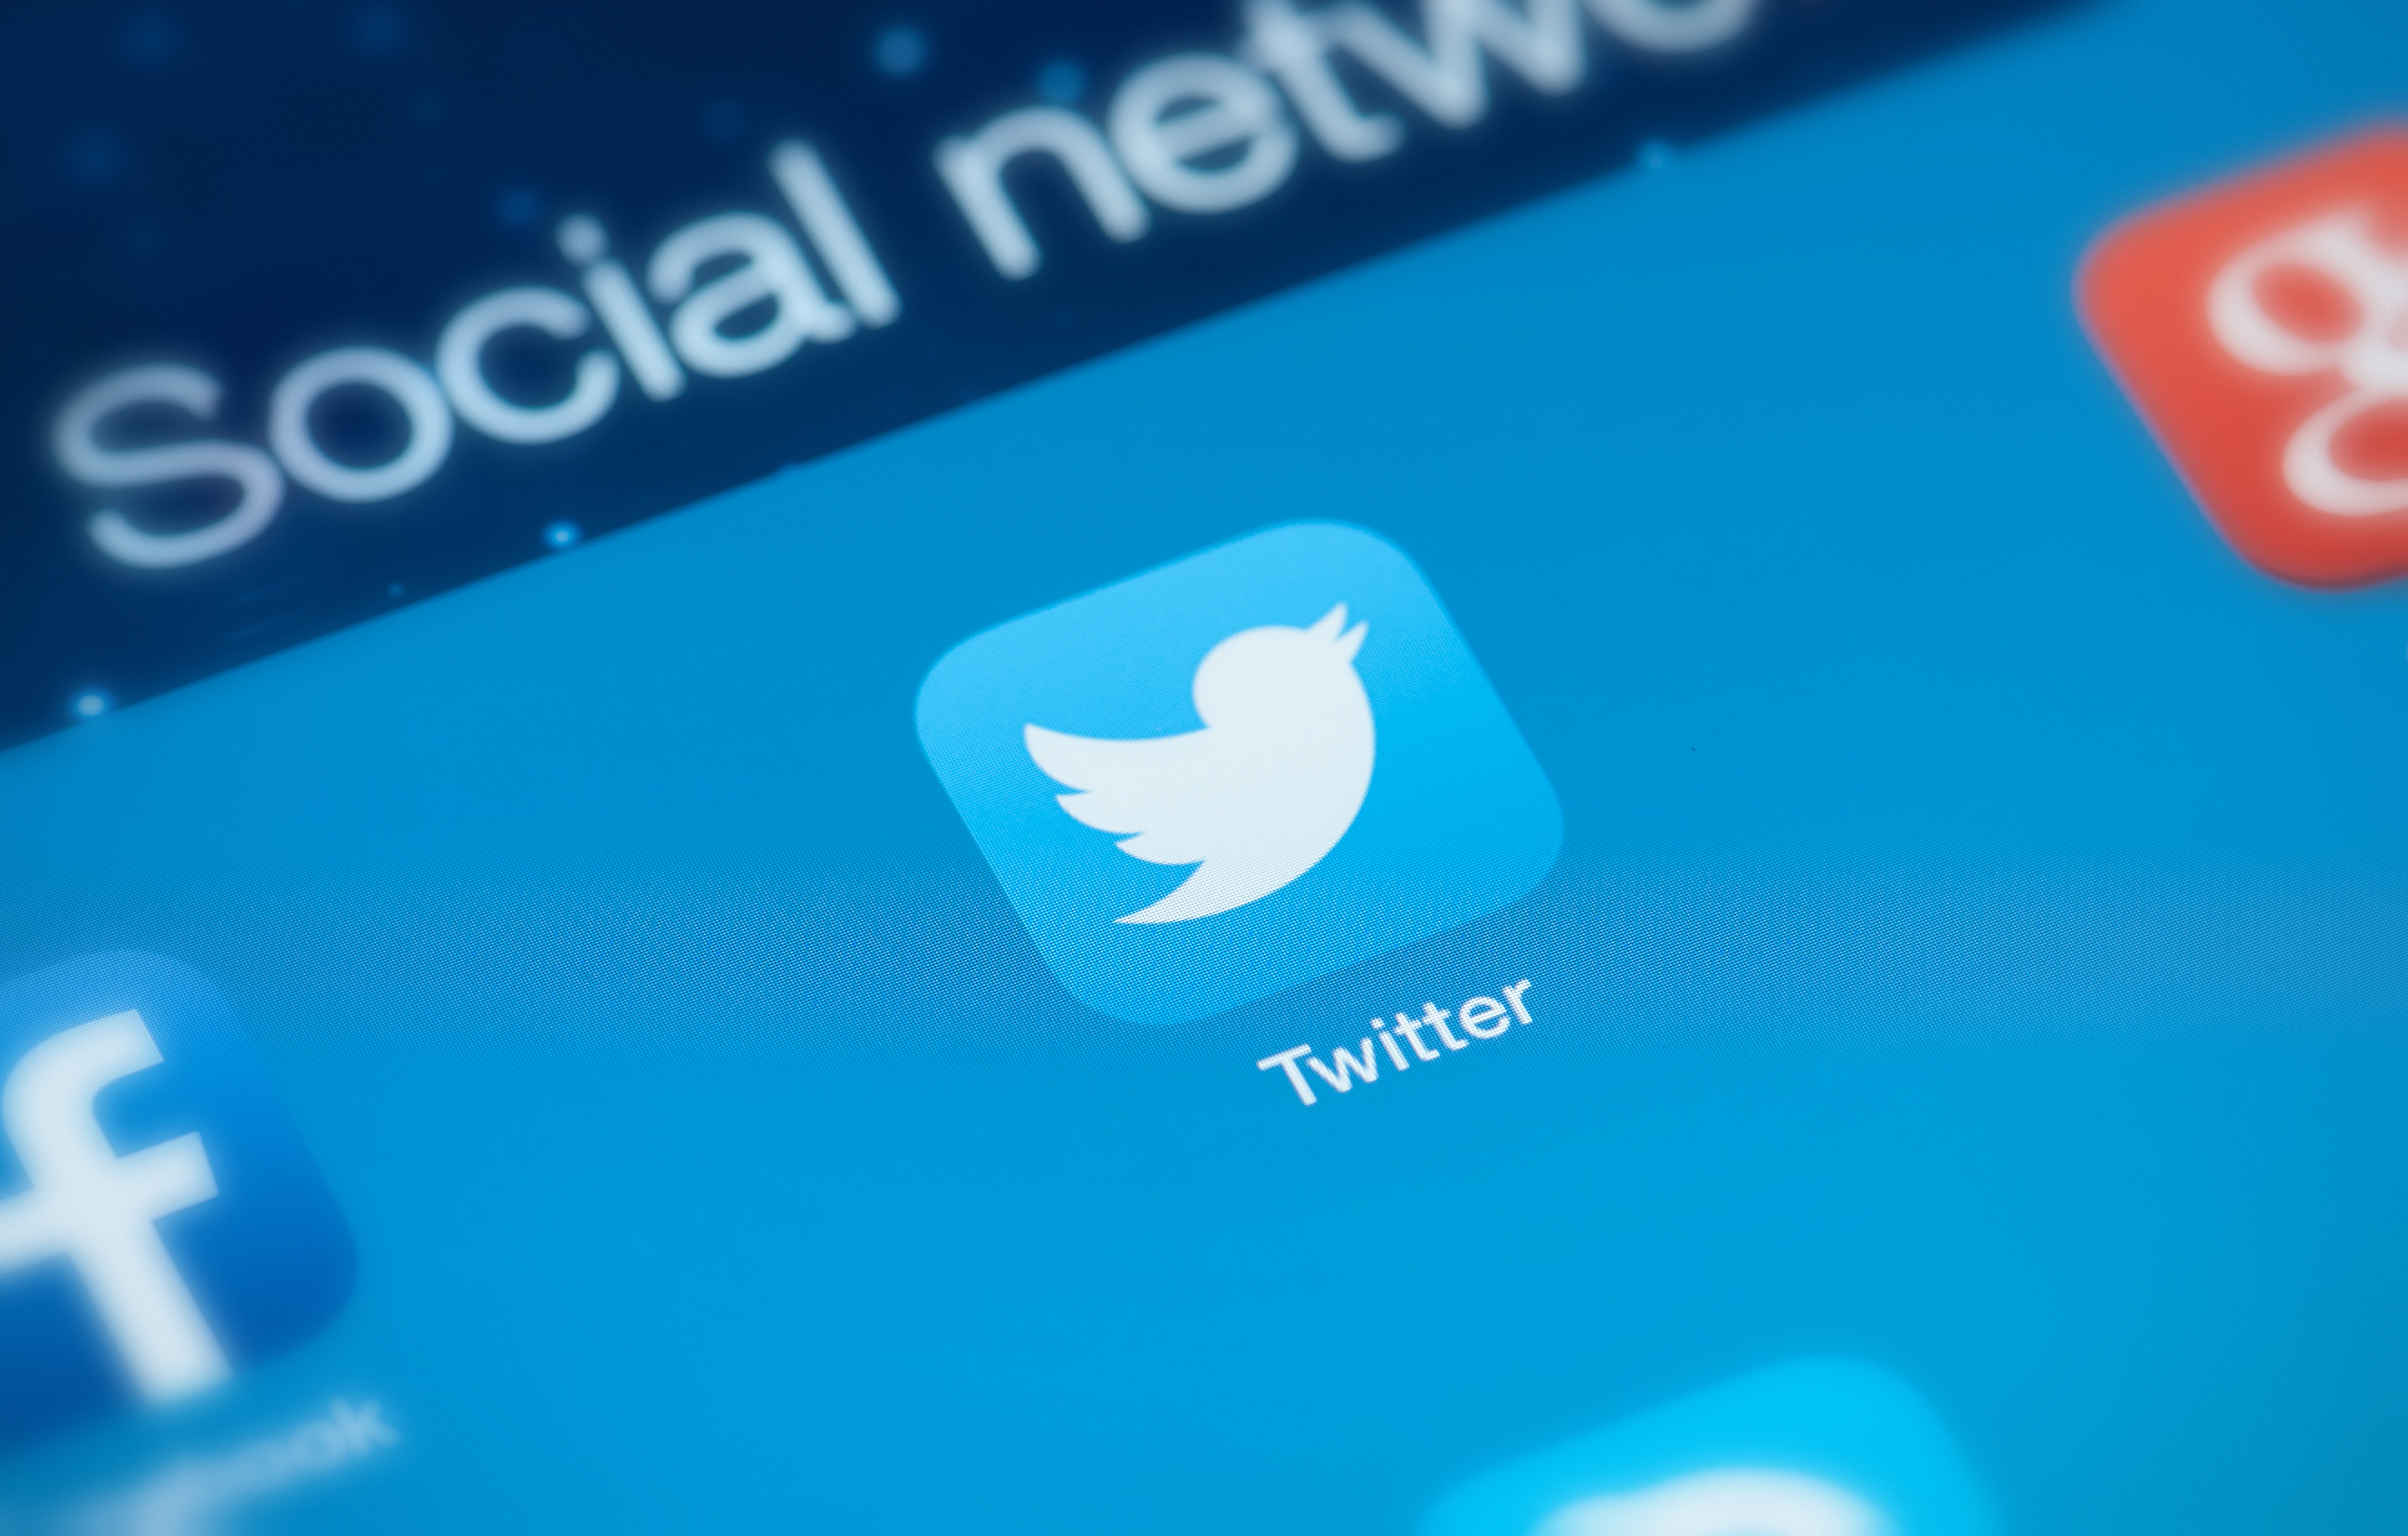 Hey! You (yes, you) could get a verified Twitter account right now